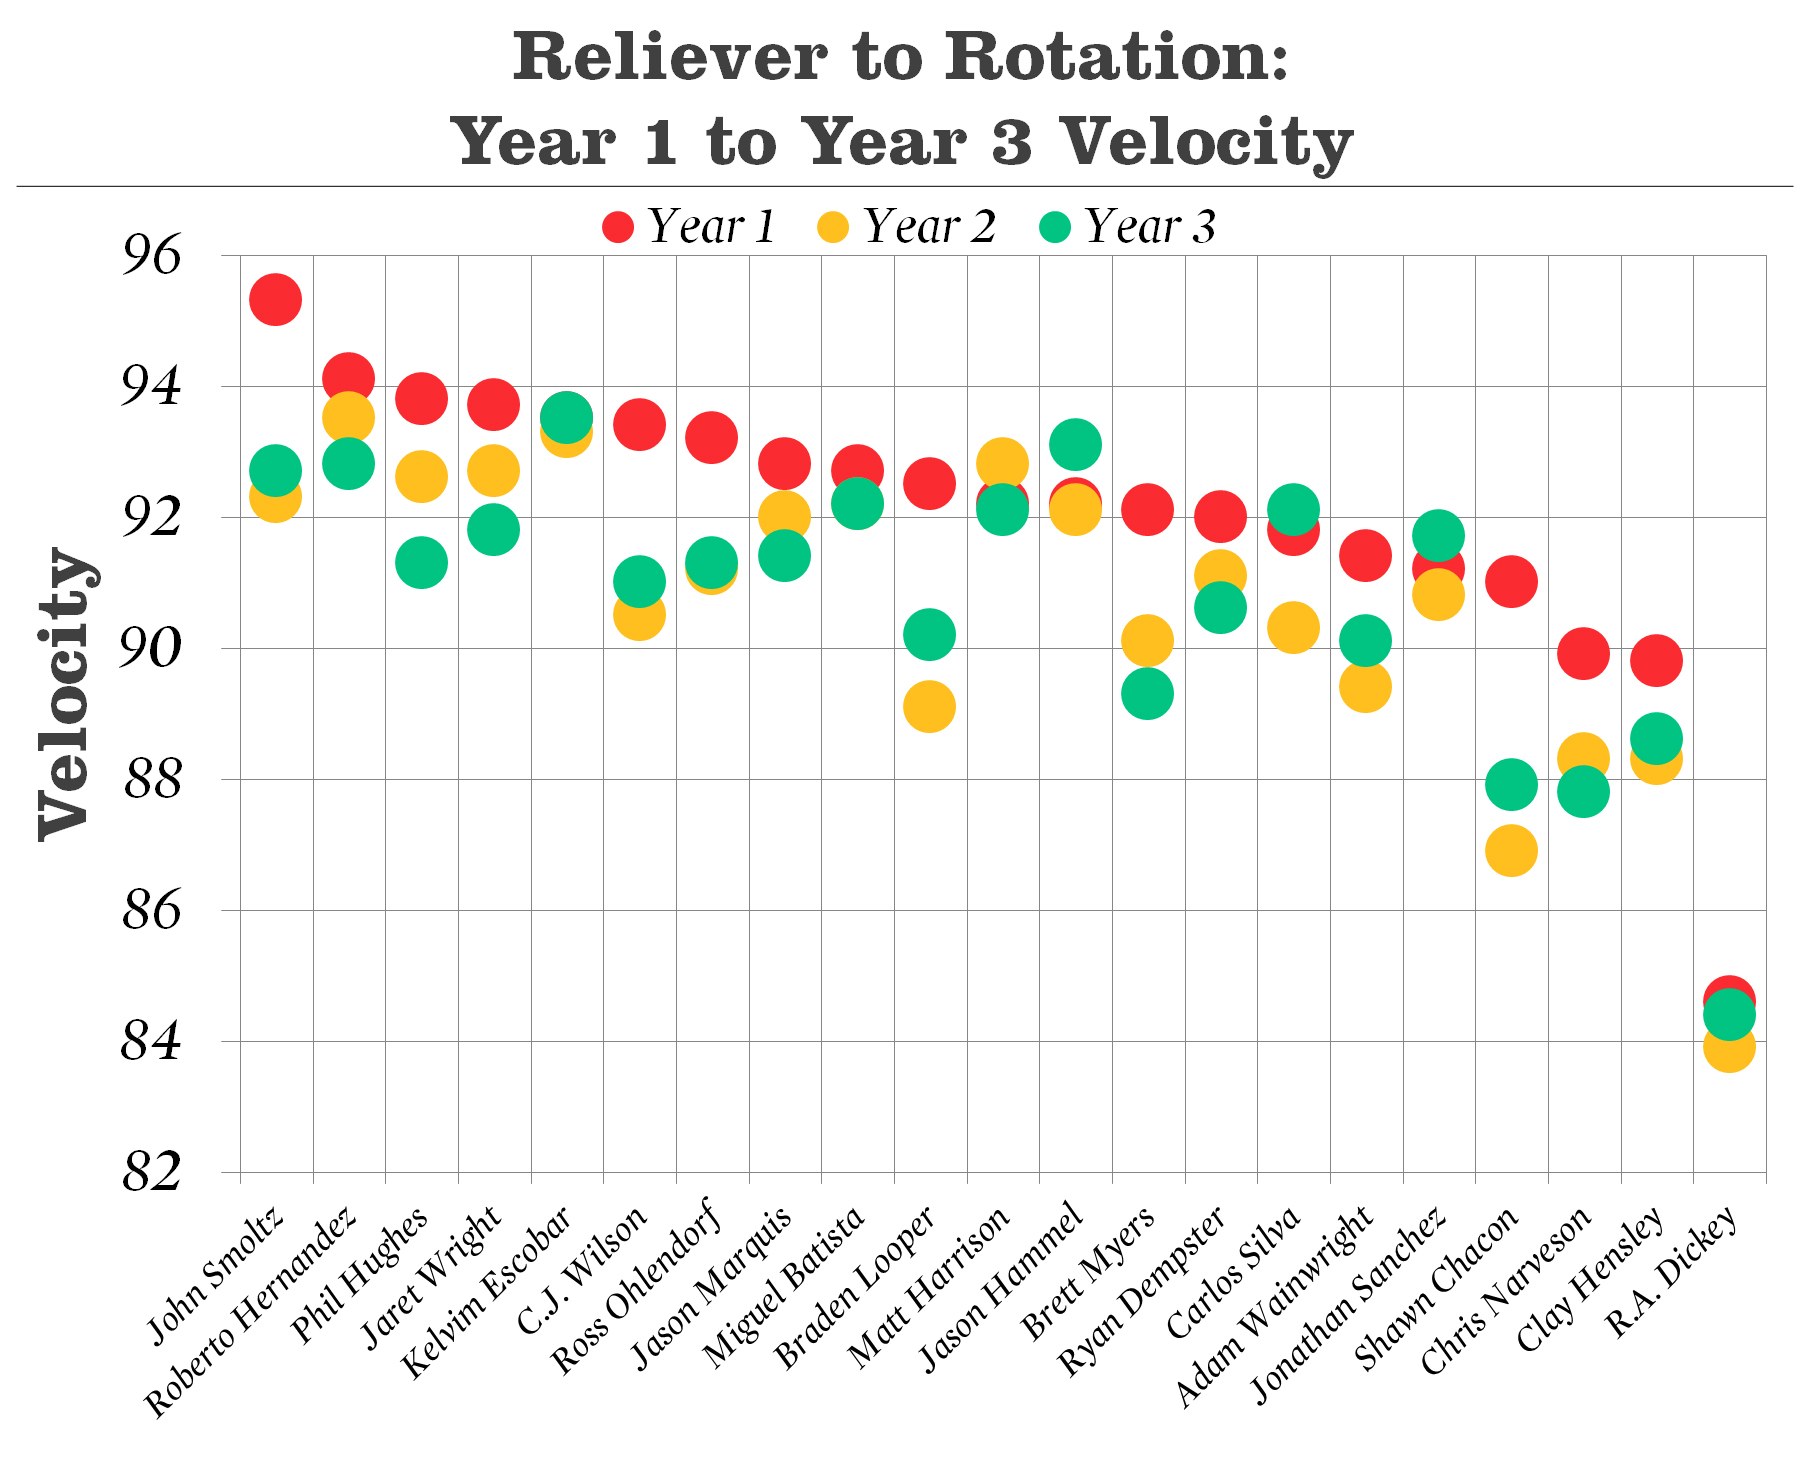 Velocity-change-reliever-rotation3_medium